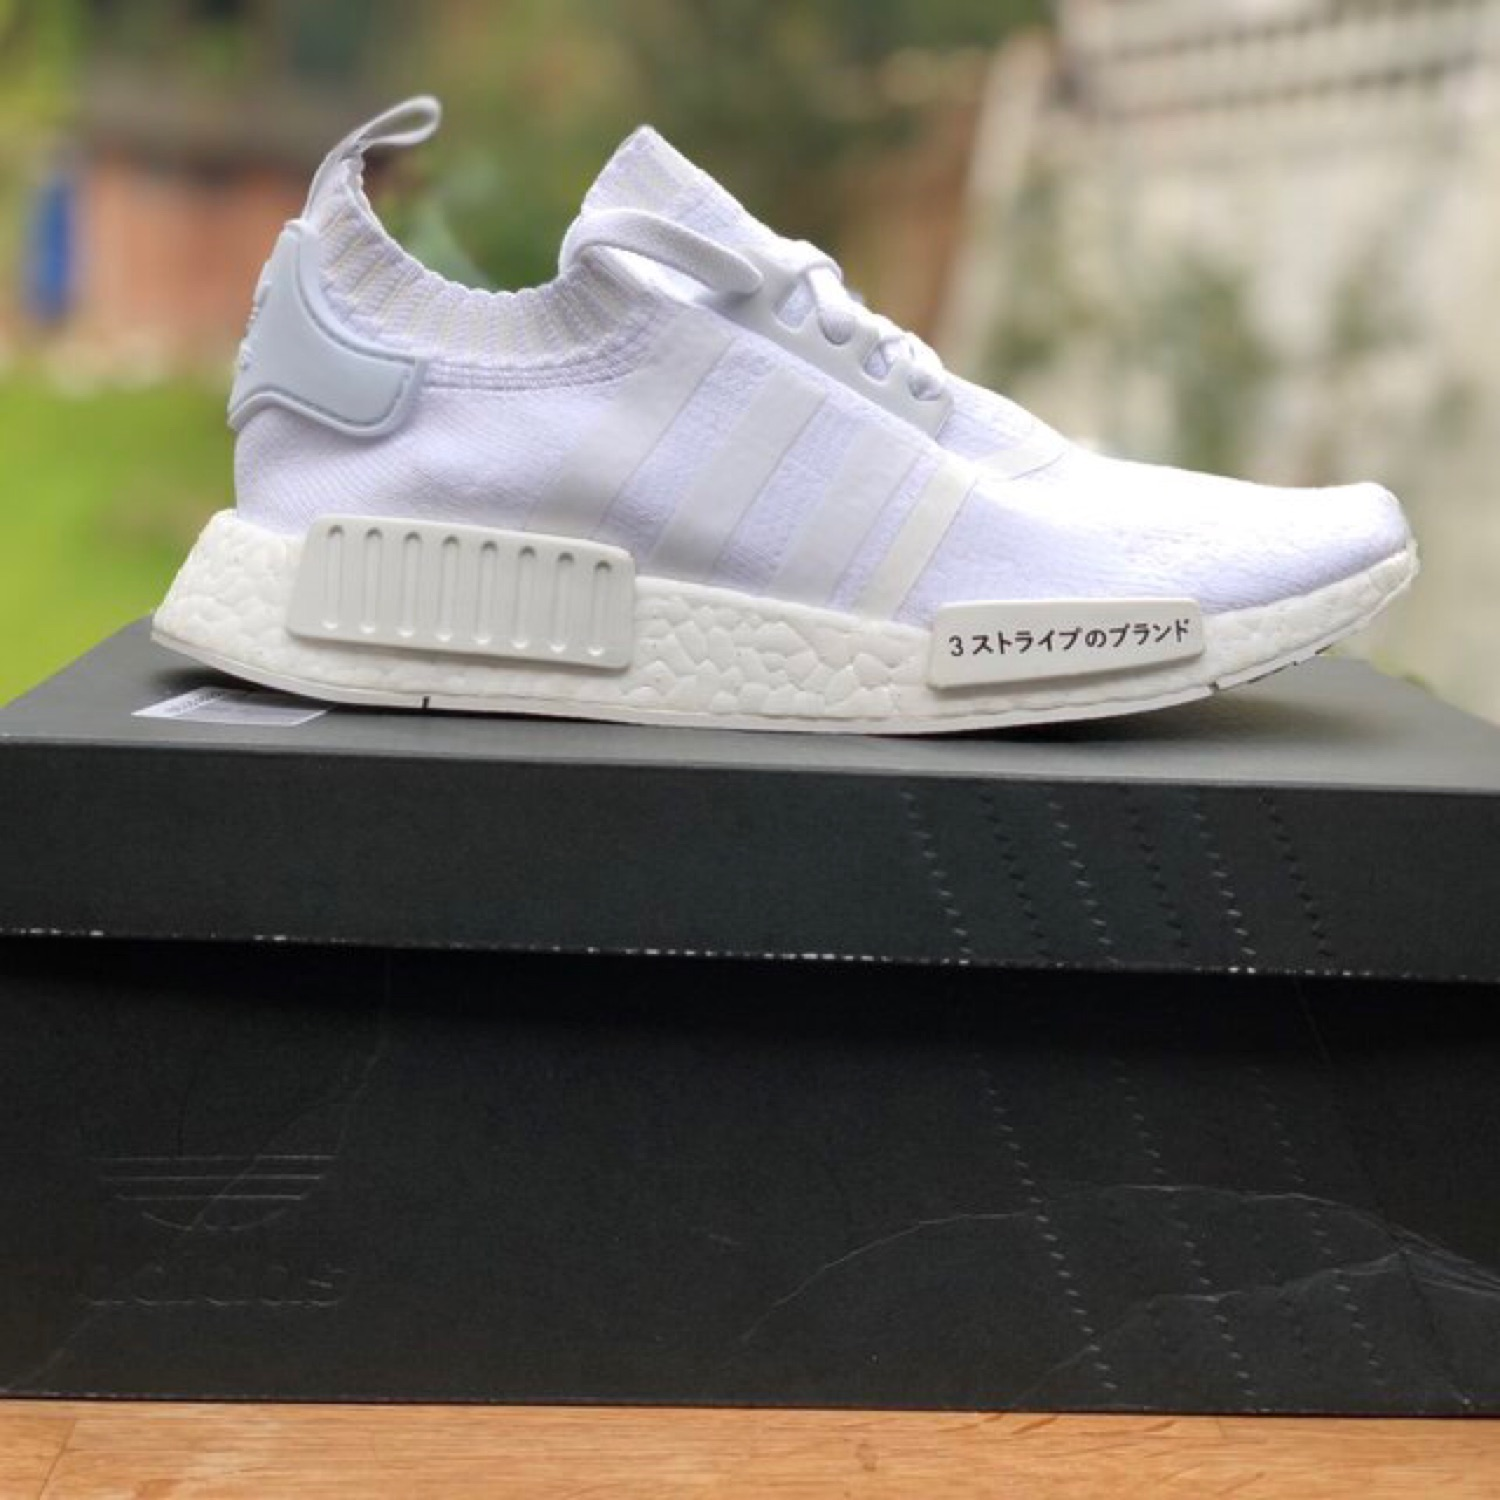 size 40 dfe85 77ef6 Adidas Nmd R1 Japan Triple White